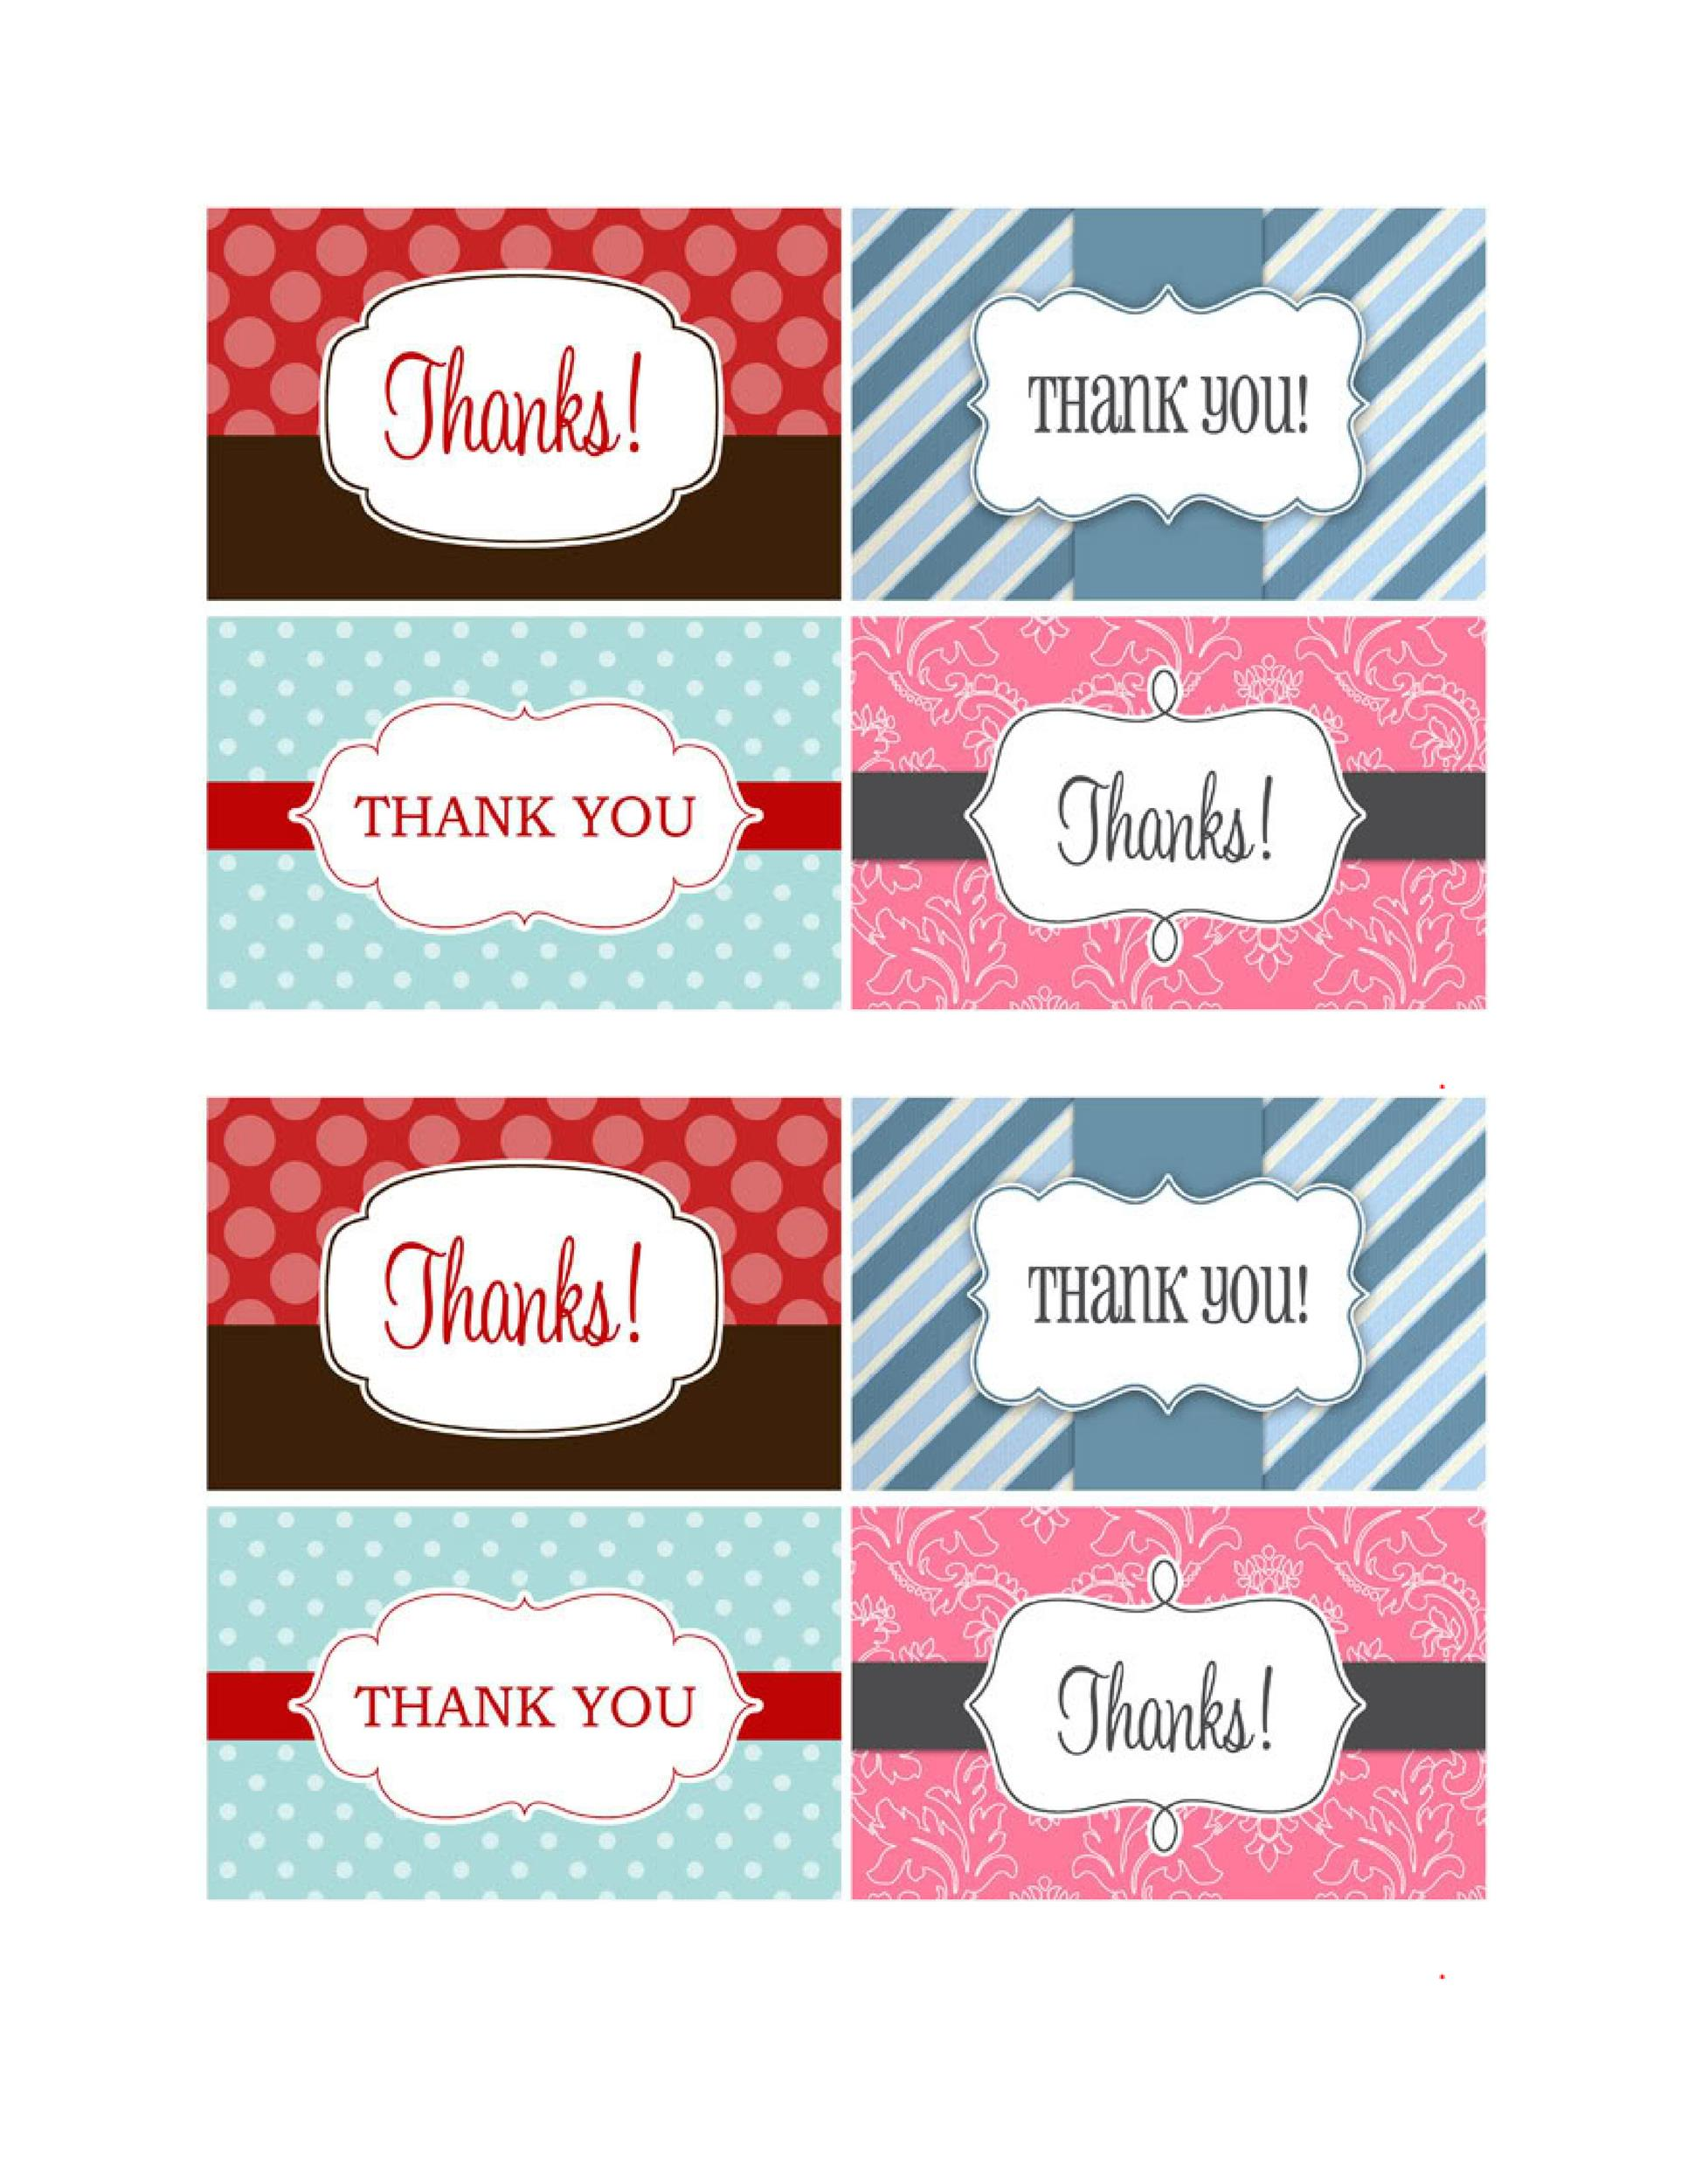 44 Free Printable Gift Tag Templates ᐅ Template Lab